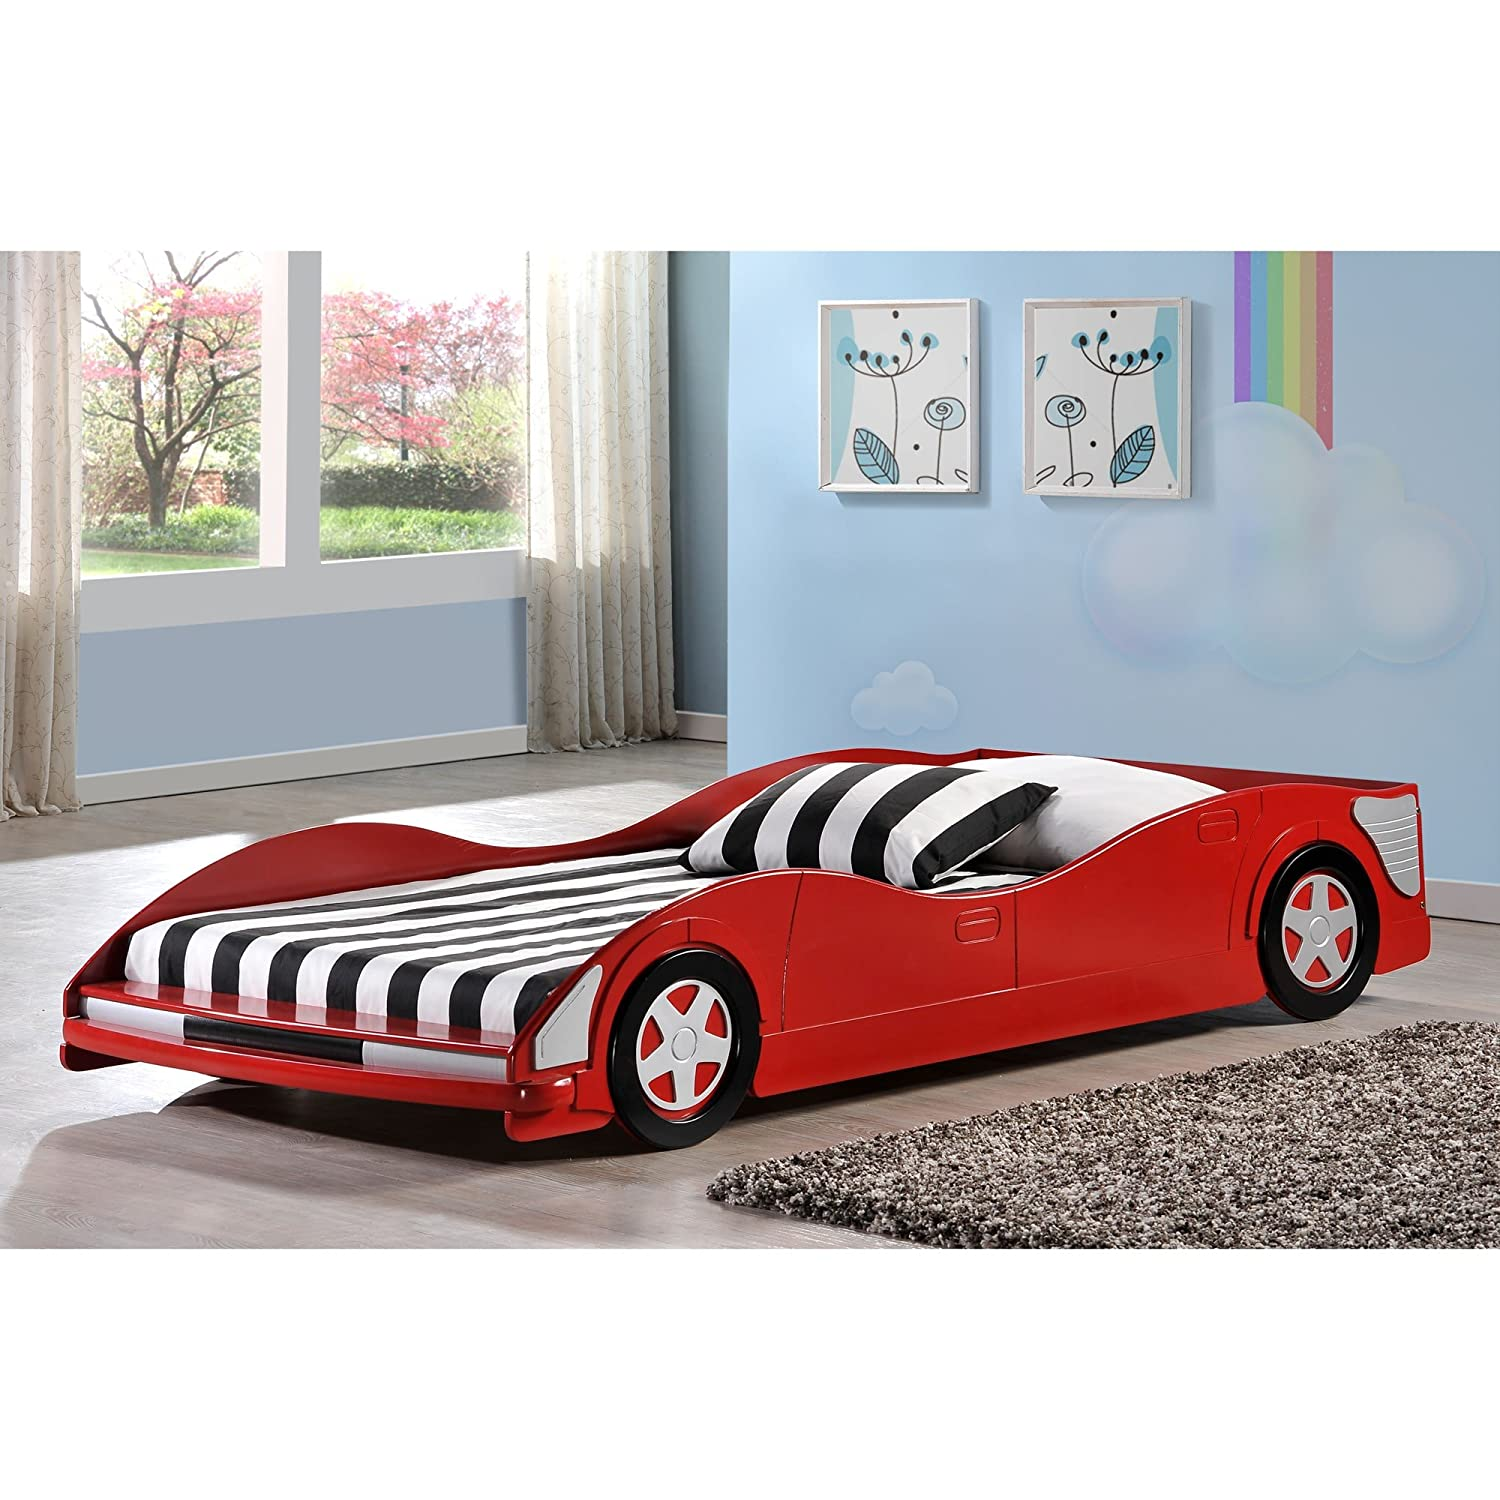 Uncategorized Bed Car amazon com twin car bed in red toys games